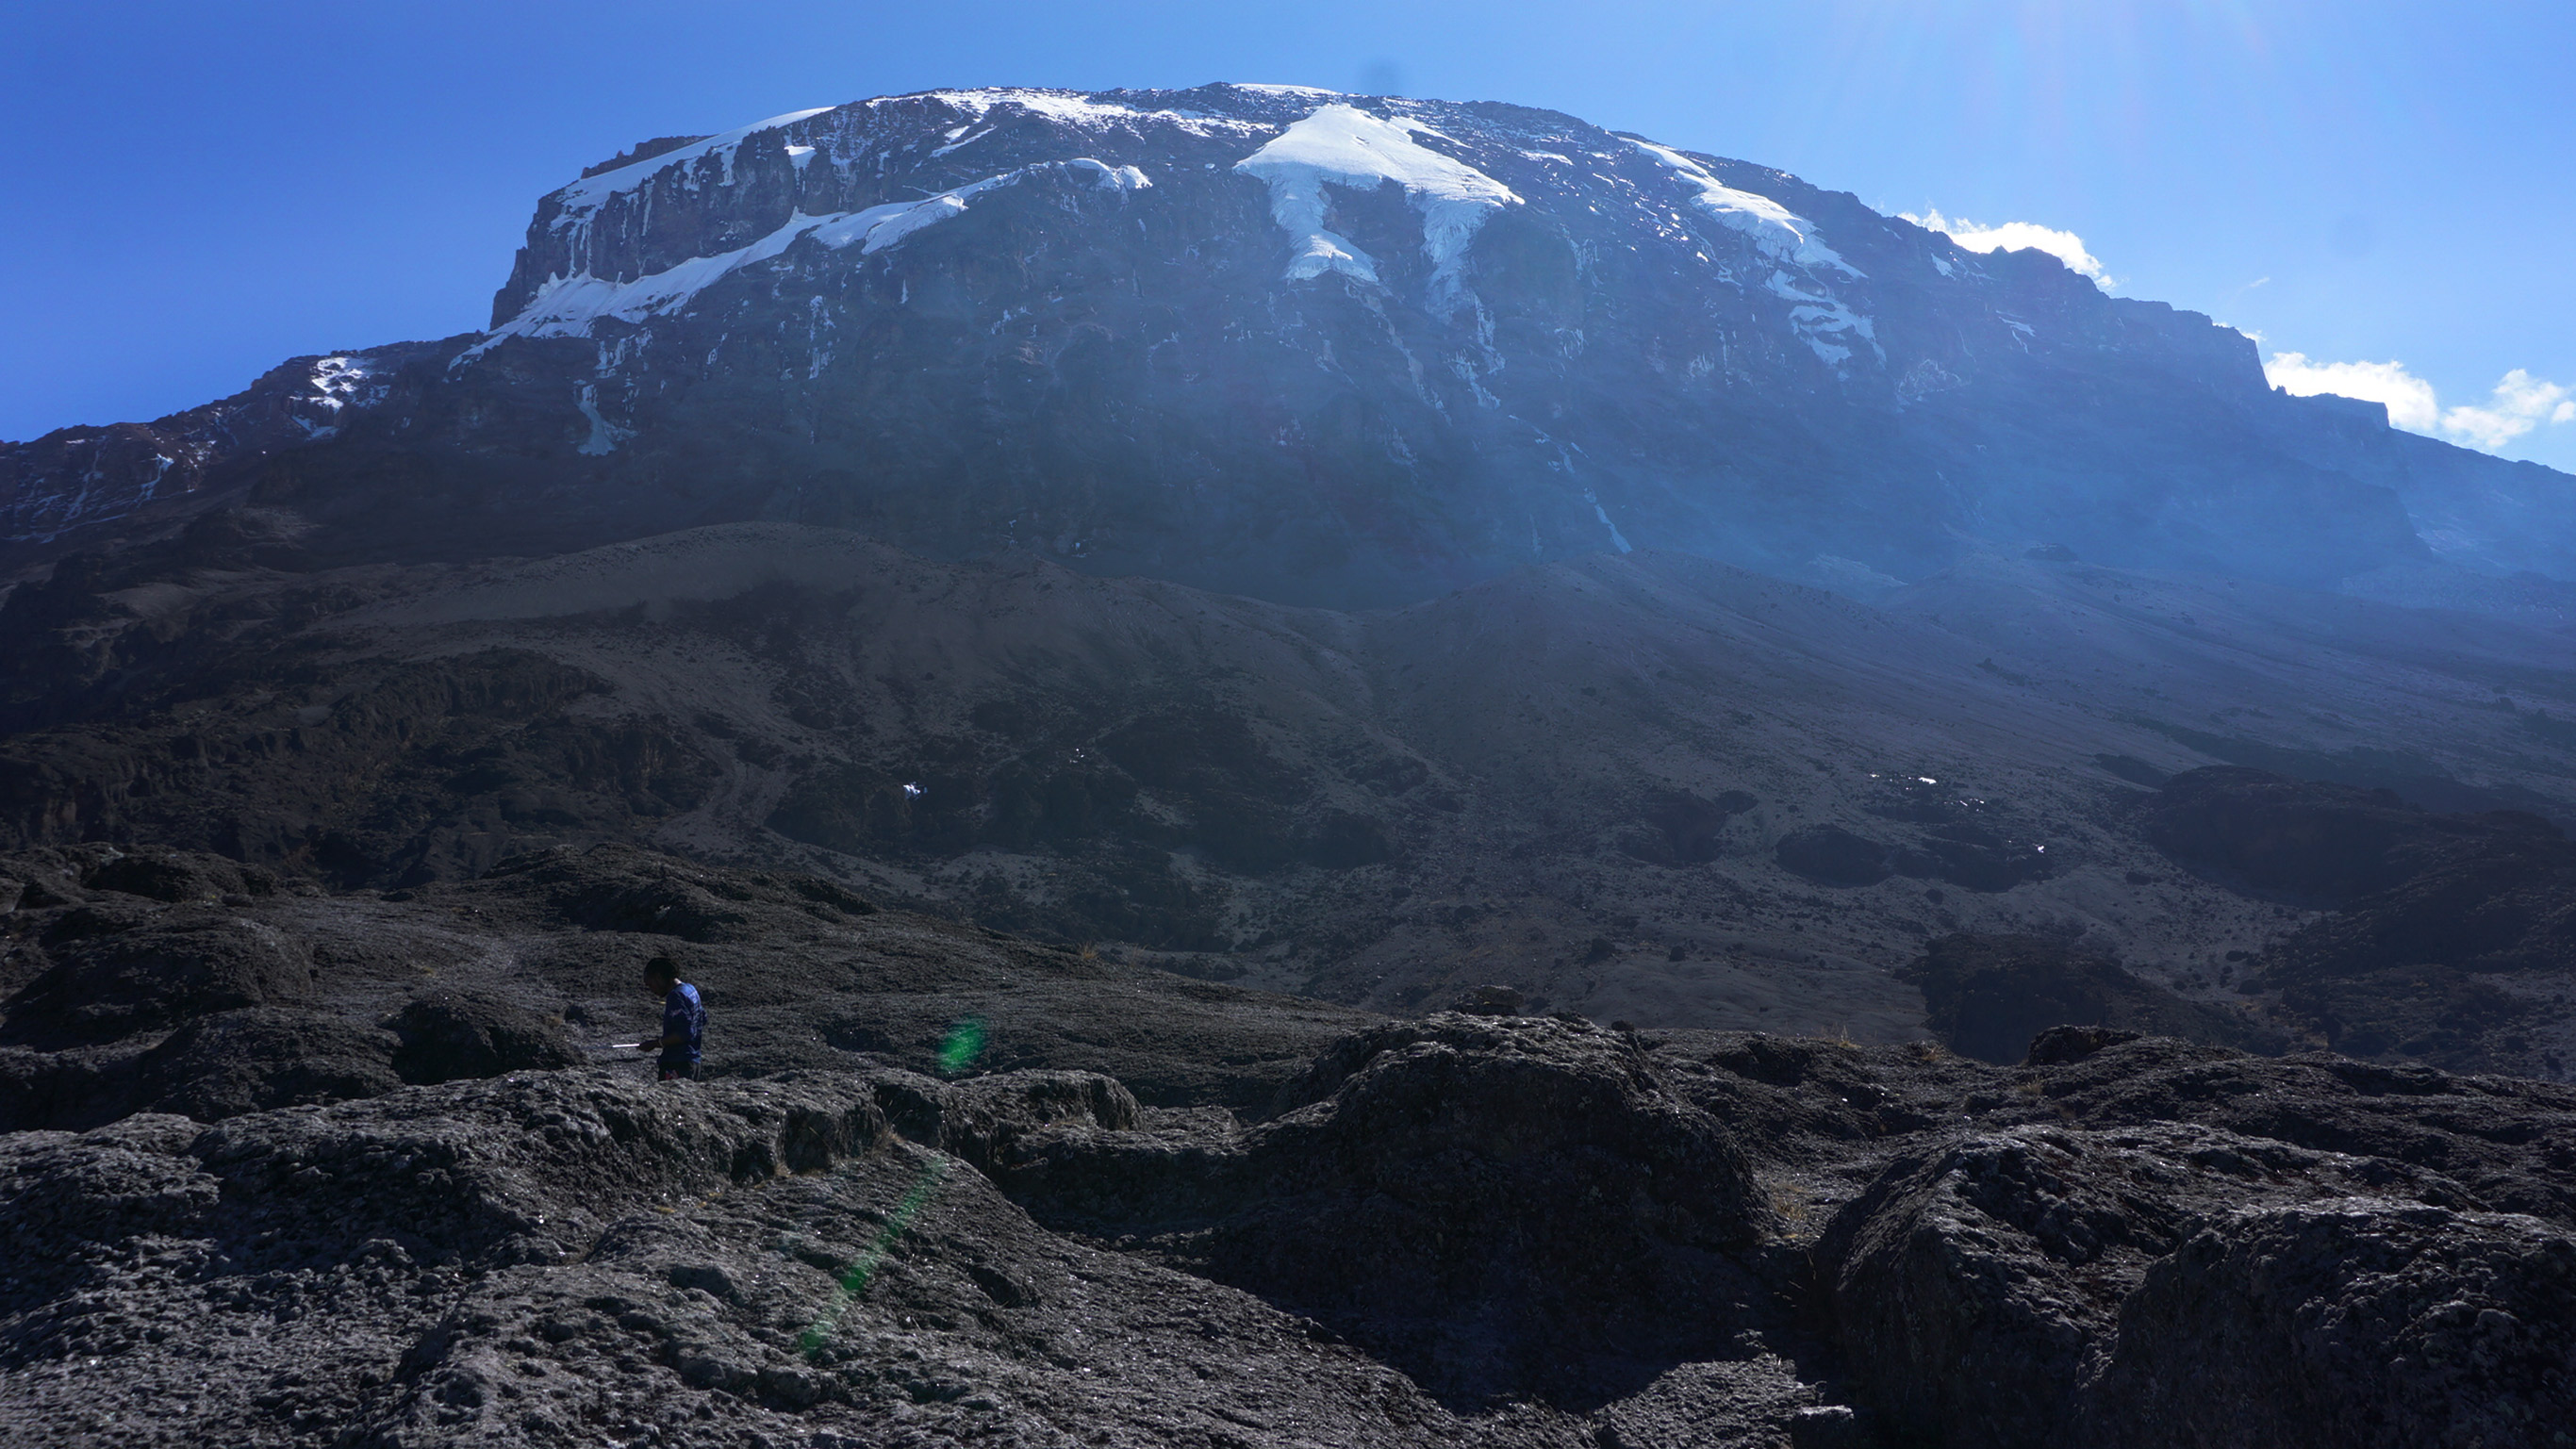 5 truths and a lie about climbing Kilimanjaro